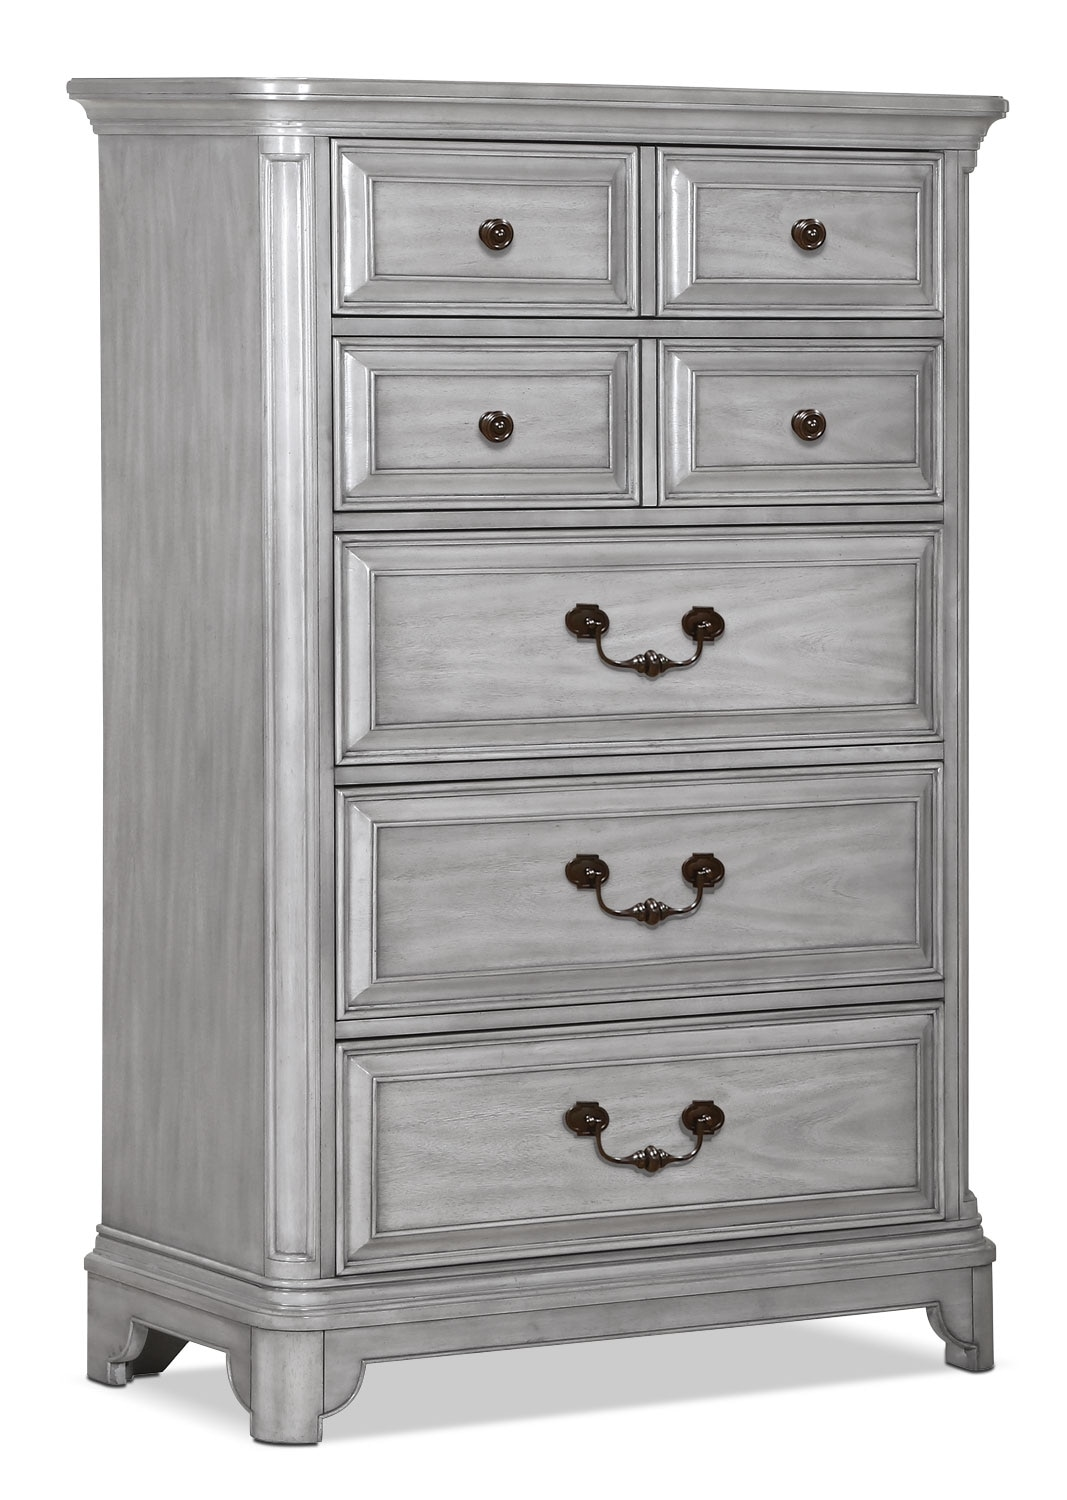 Bedroom Furniture - Tressa Chest - Weathered Grey